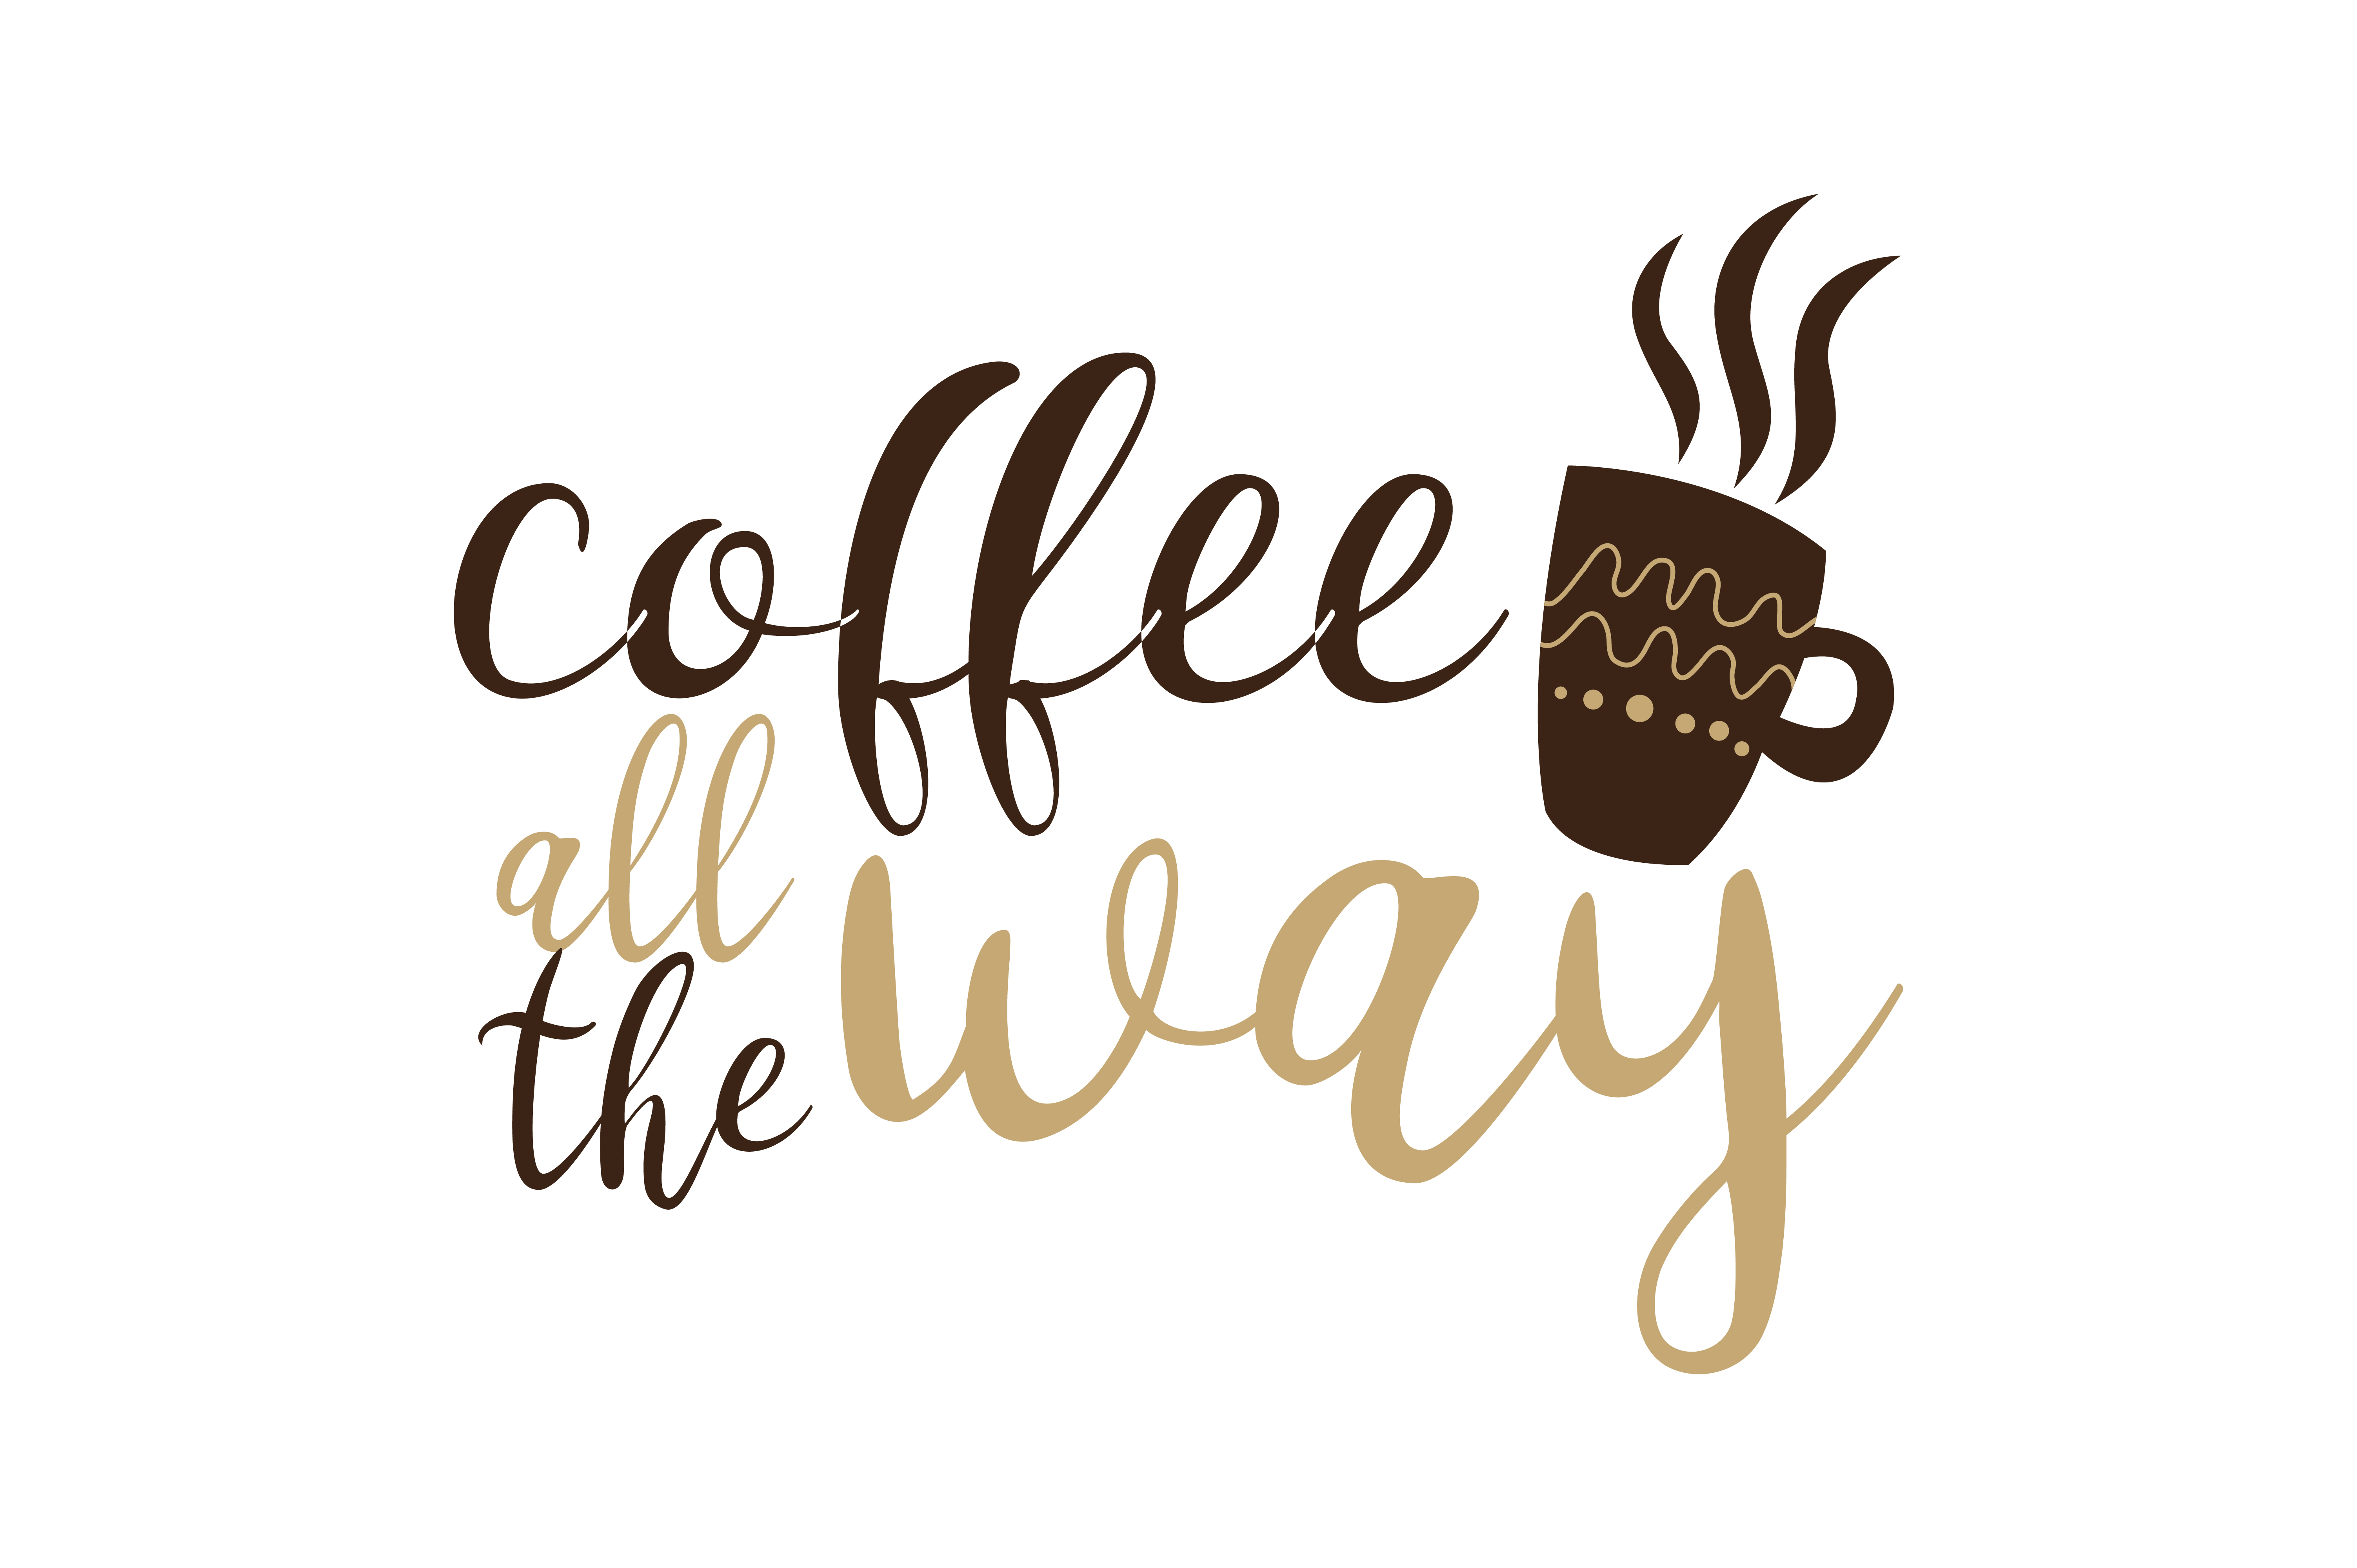 Download Free Coffee All The Way Svg Cut Graphic By Thelucky Creative Fabrica for Cricut Explore, Silhouette and other cutting machines.